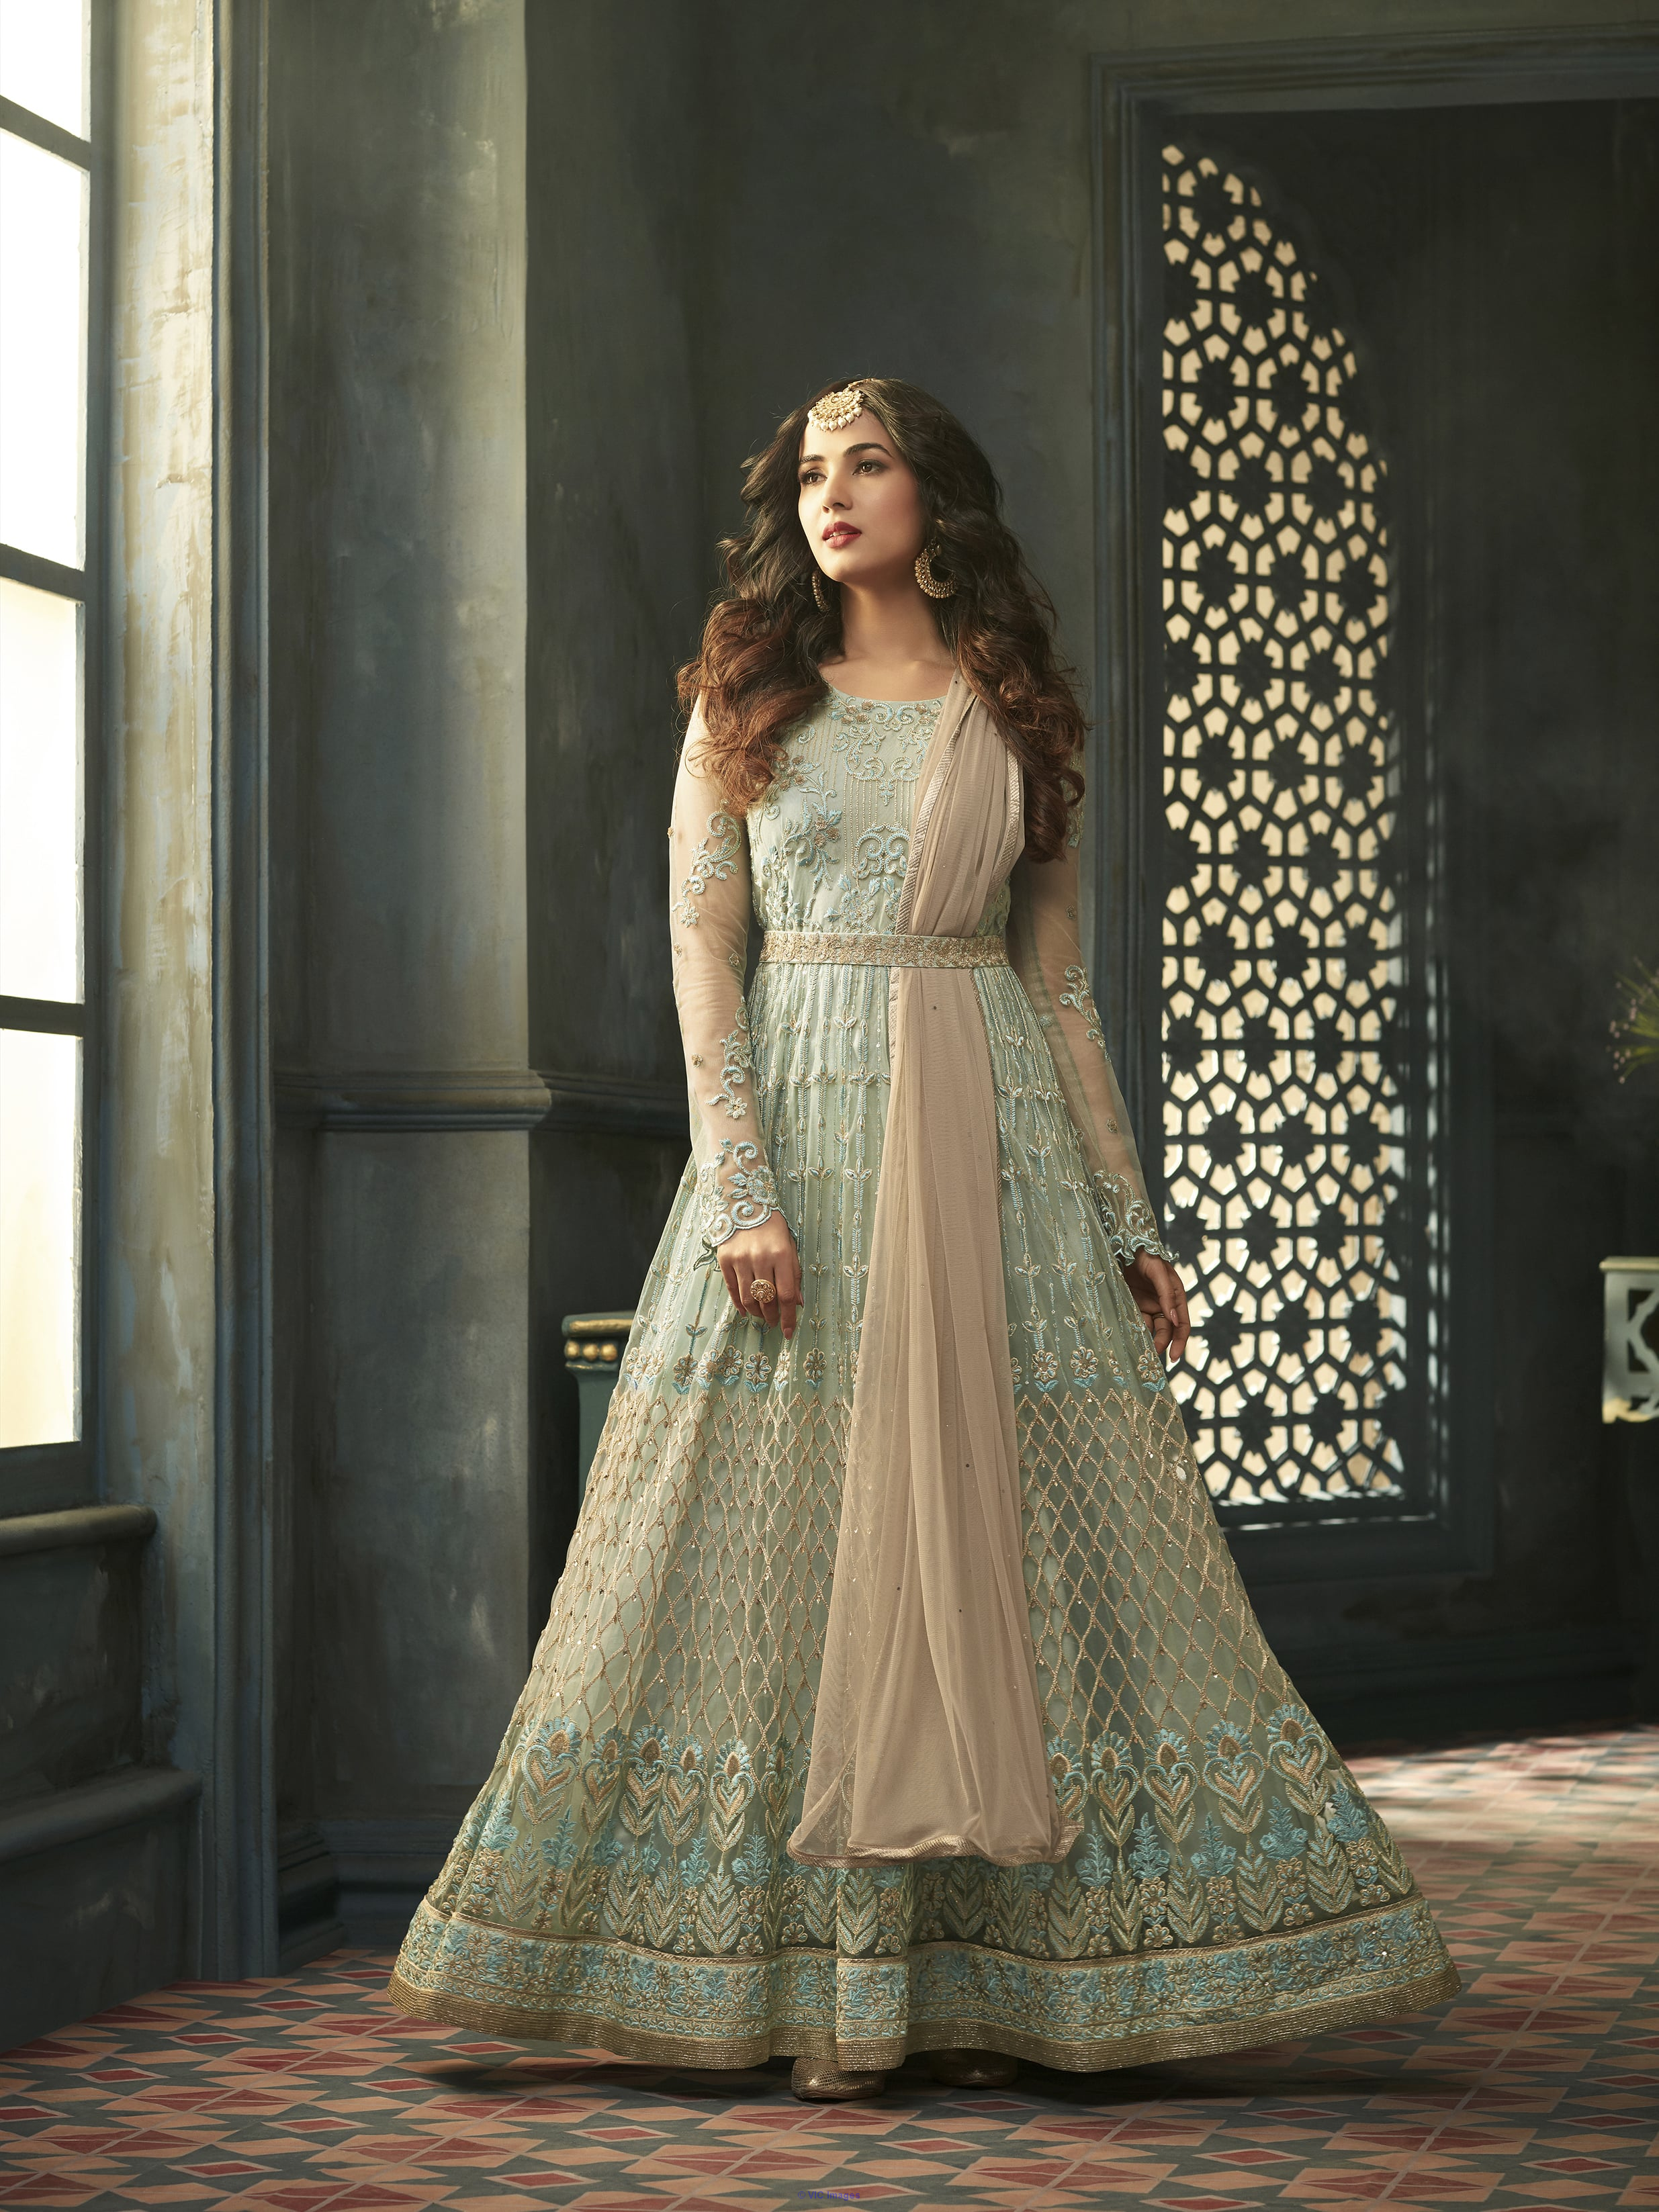 Free Shipping Offers on Indian Clothing Online afula